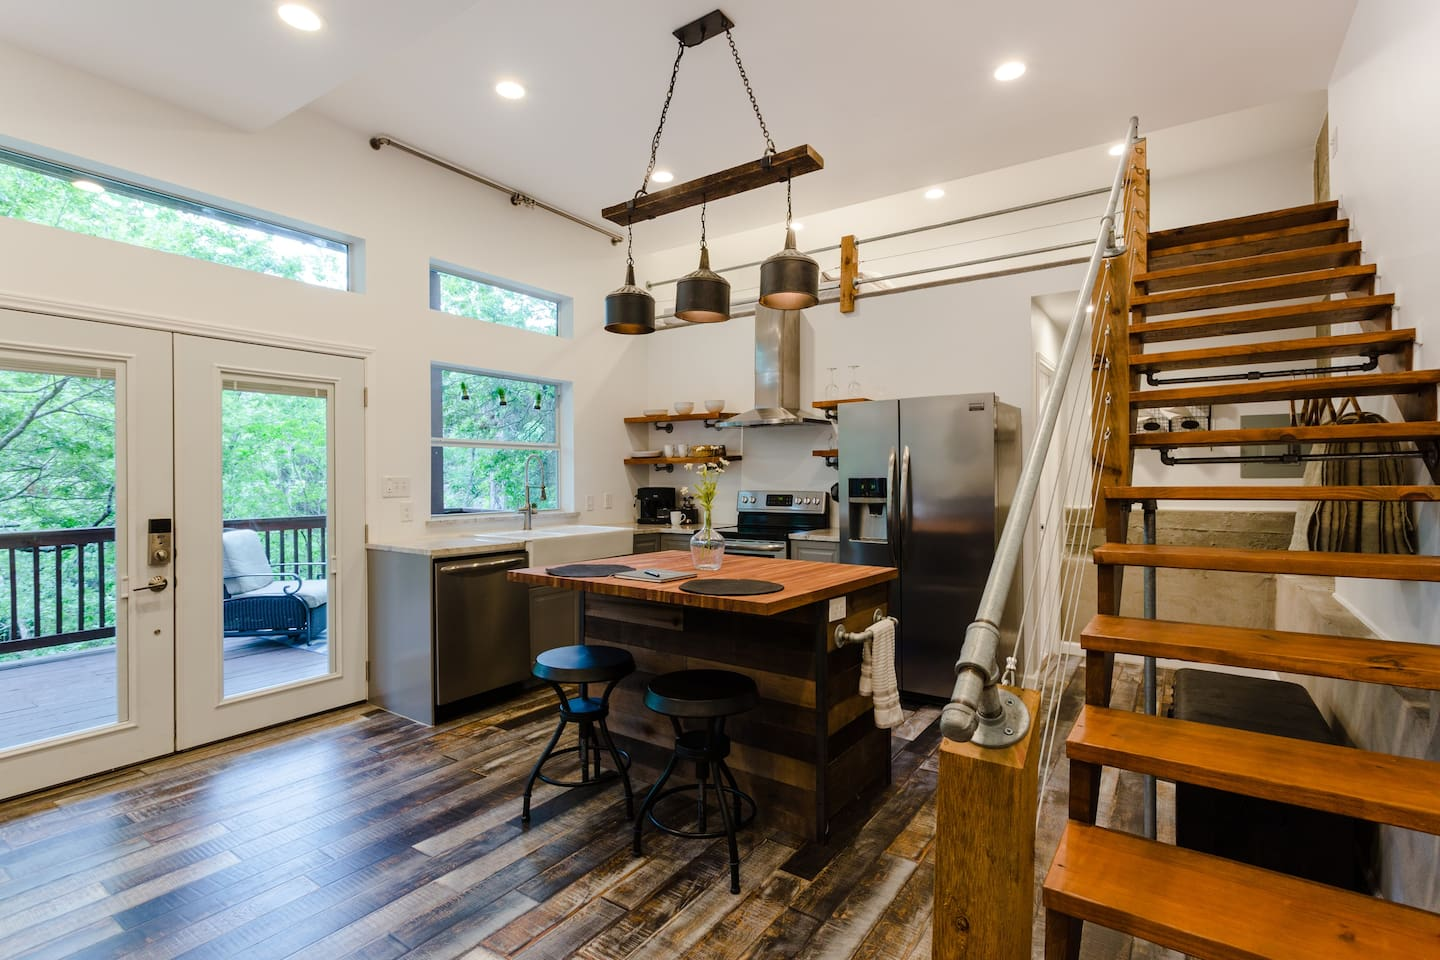 Full kitchen overlooking balcony. Stairs leading up to loft area.